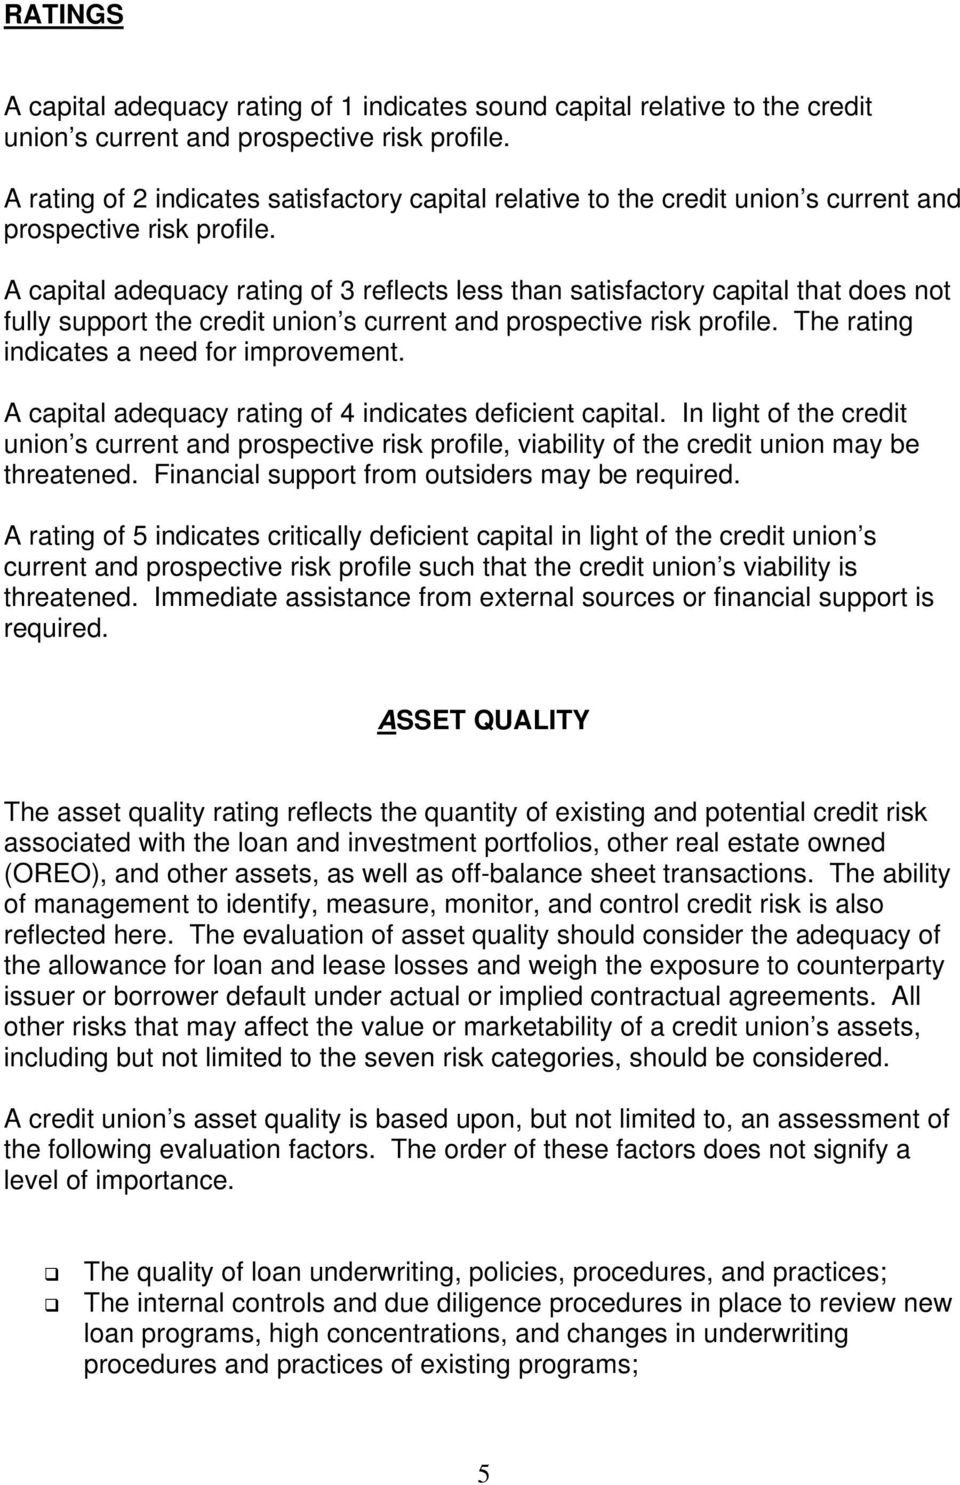 A capital adequacy rating of 3 reflects less than satisfactory capital that does not fully support the credit union s current and prospective risk profile. The rating indicates a need for improvement.